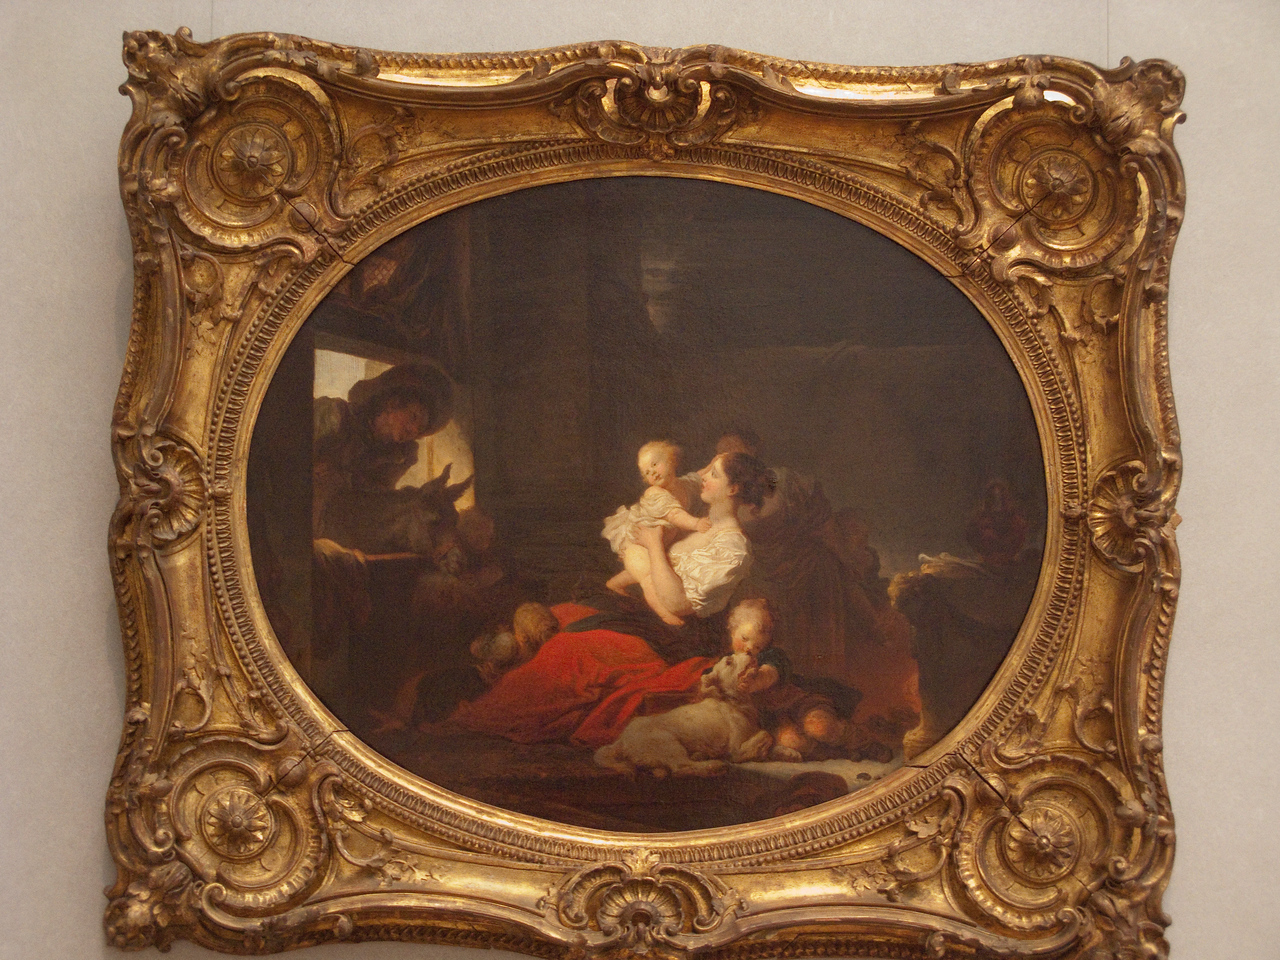 The Happy Family by Fragonard